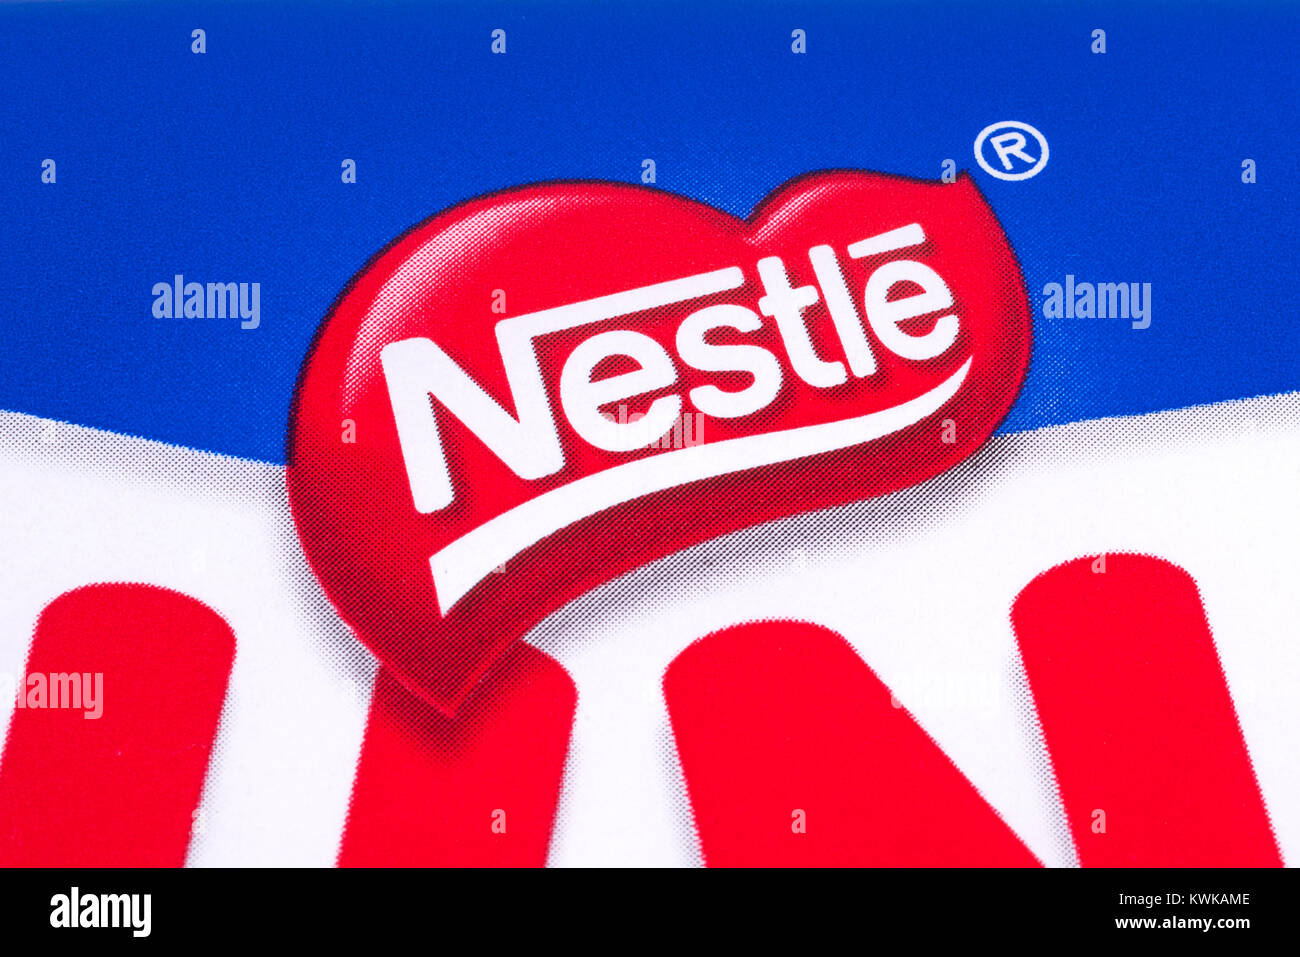 aim of nestle company Nestle also formed a merger with anglo-swiss condensed milk company with the aim of widening its product range and merged its ice cream business with dreyer's in us since its entrance in the market, nestle has prospered in various product innovations and business achievements due to which it had become the major food and nutrition company.